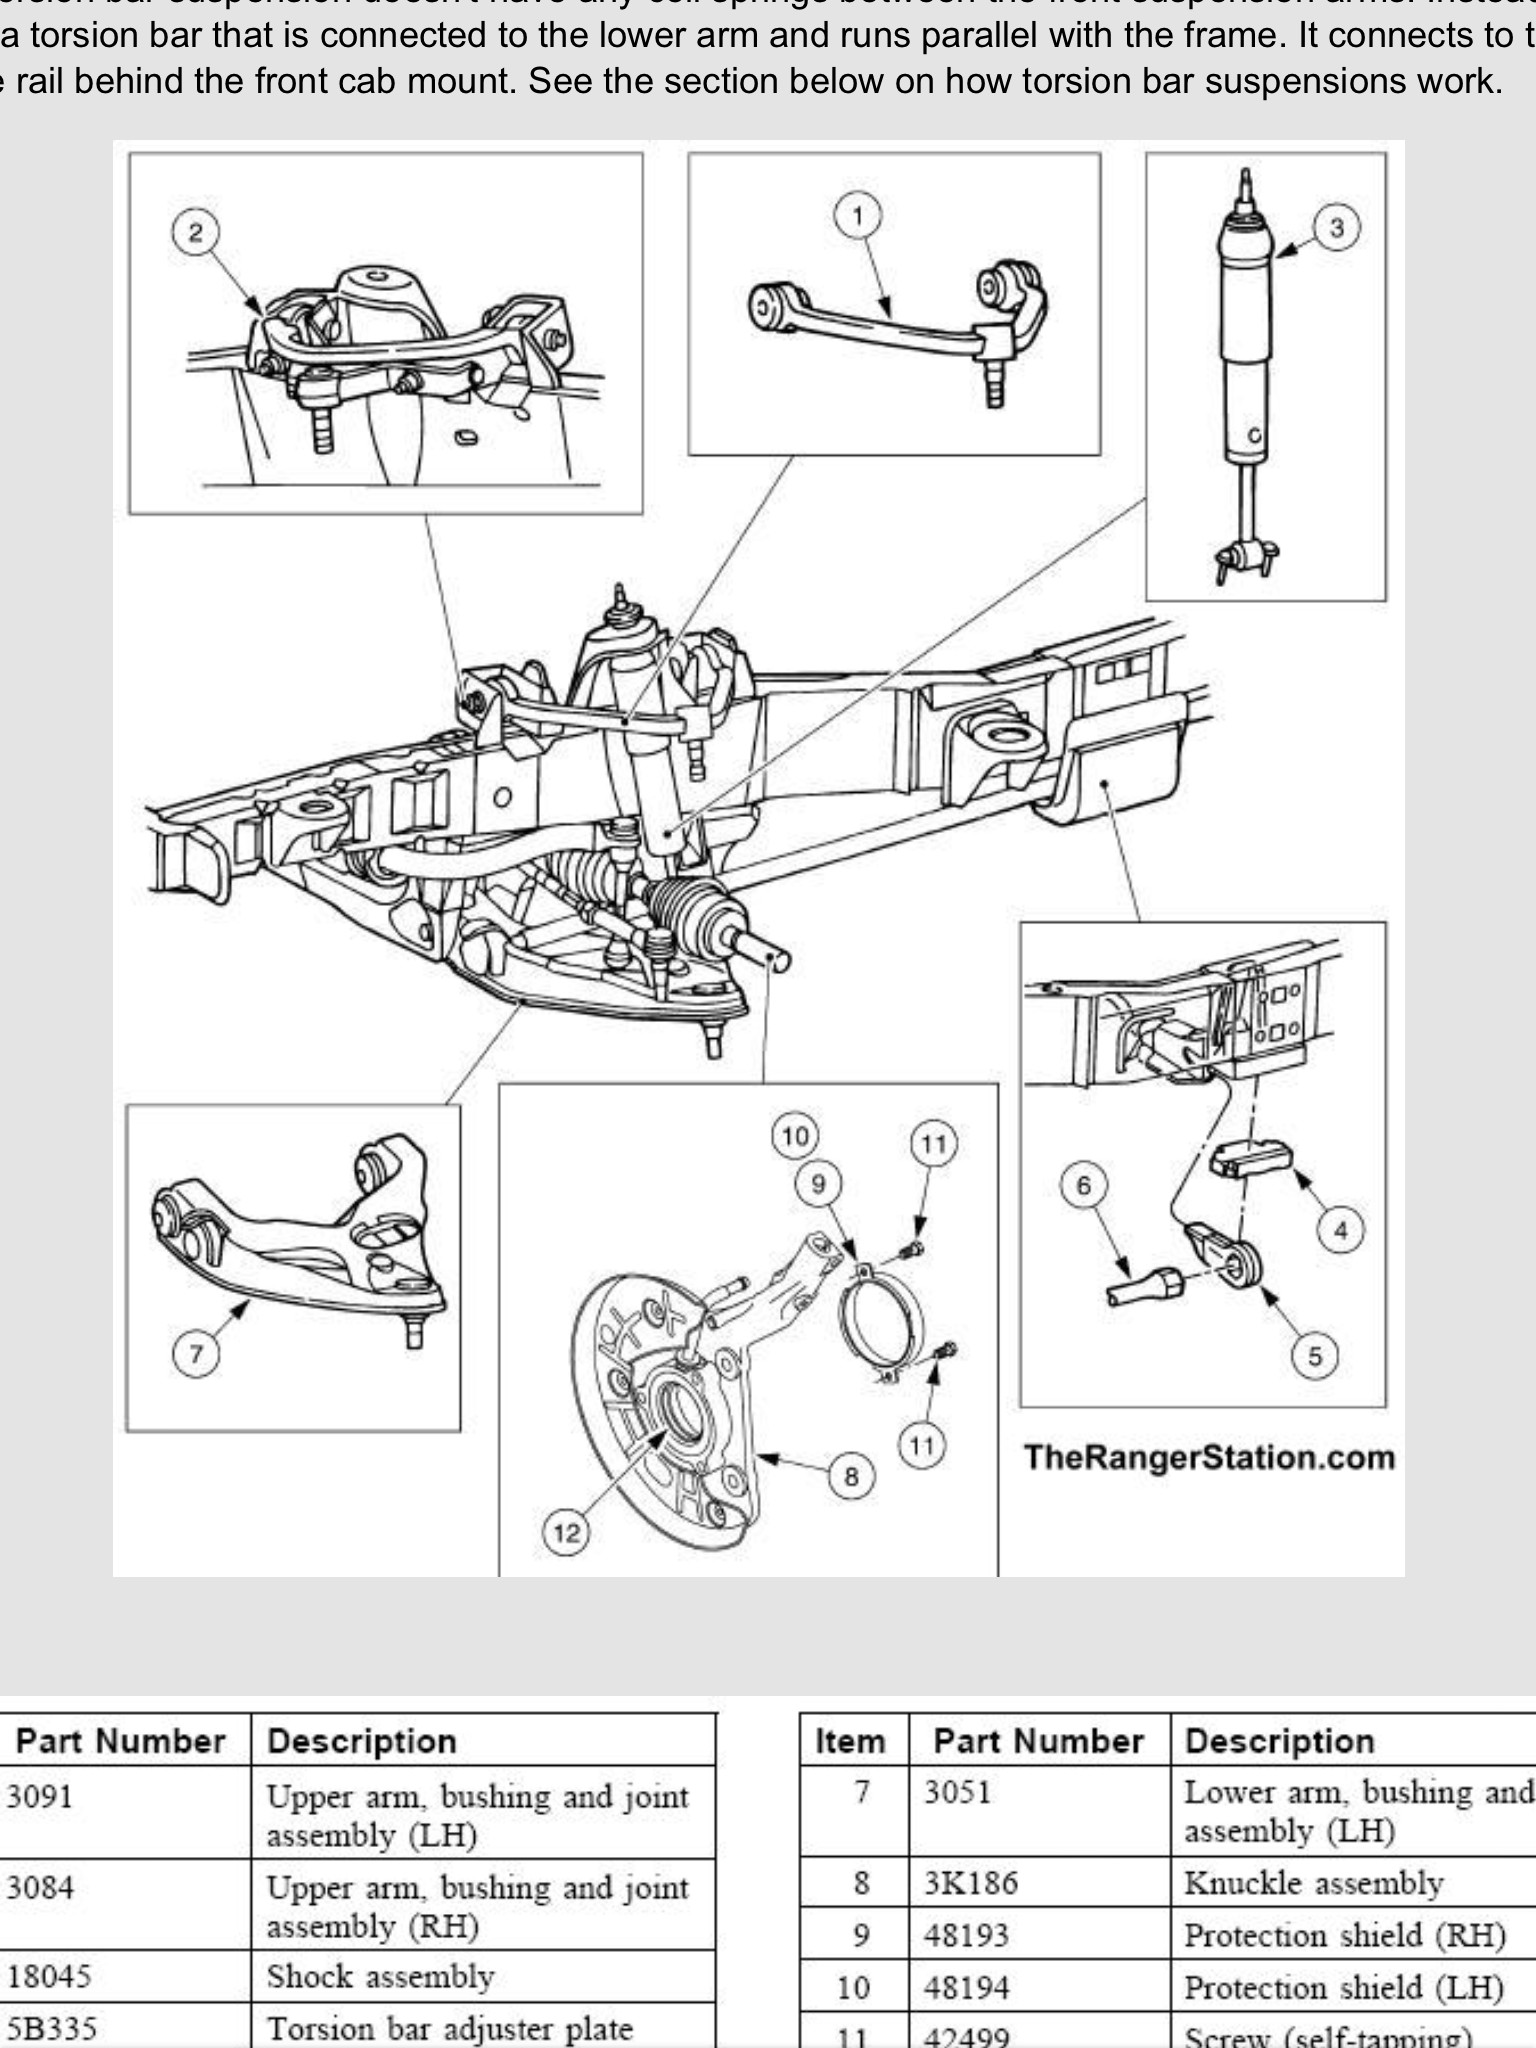 Car Parts Diagram Suspension Pin by Tedja Alvin On Serba Serbi Mesin Of Car Parts Diagram Suspension Cub Cadet Parts Diagrams Cub Cadet 640 6×4 Utility Vehicle S N